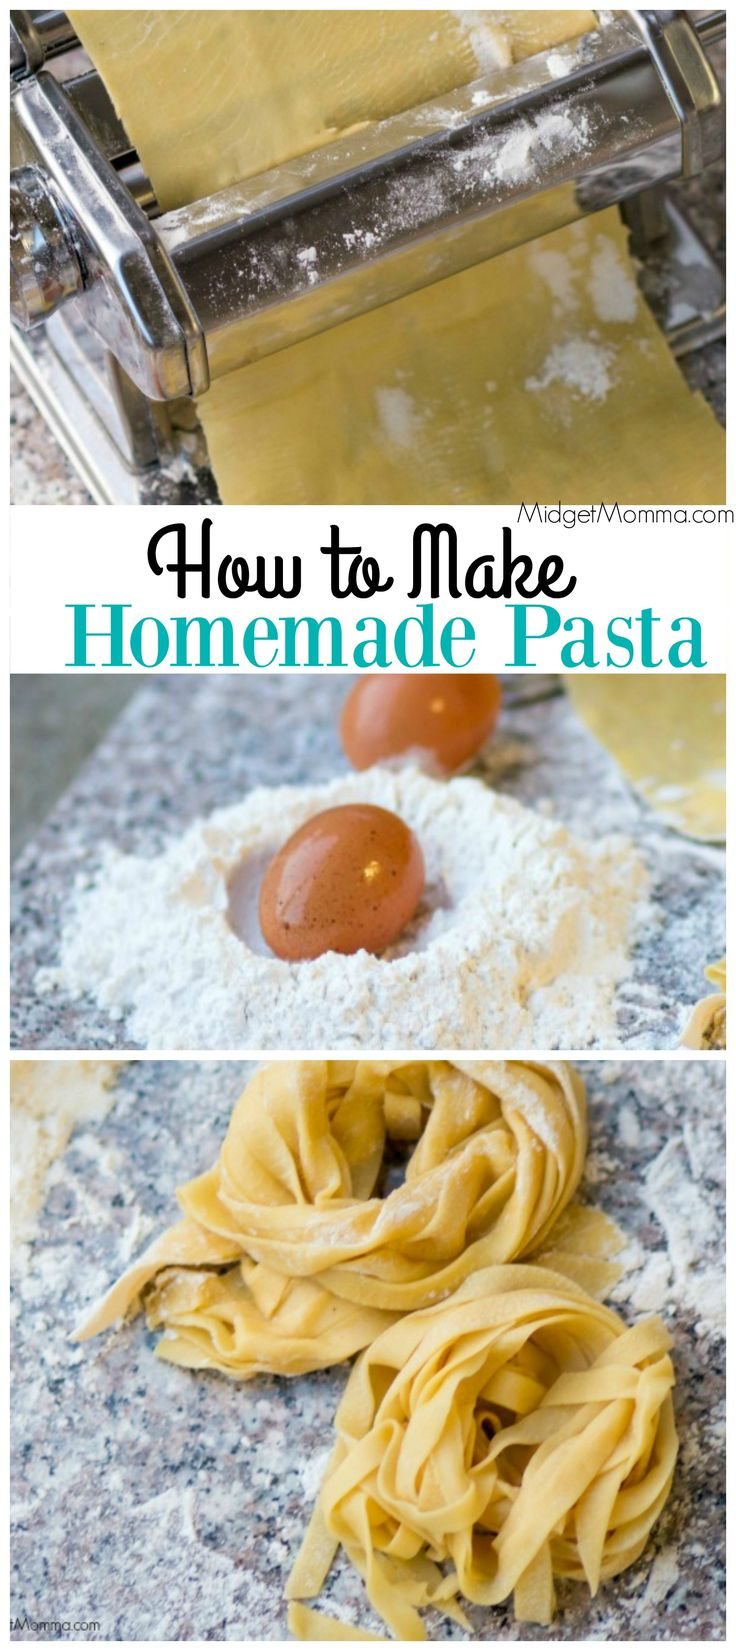 Best 25+ Homemade pasta ideas on Pinterest